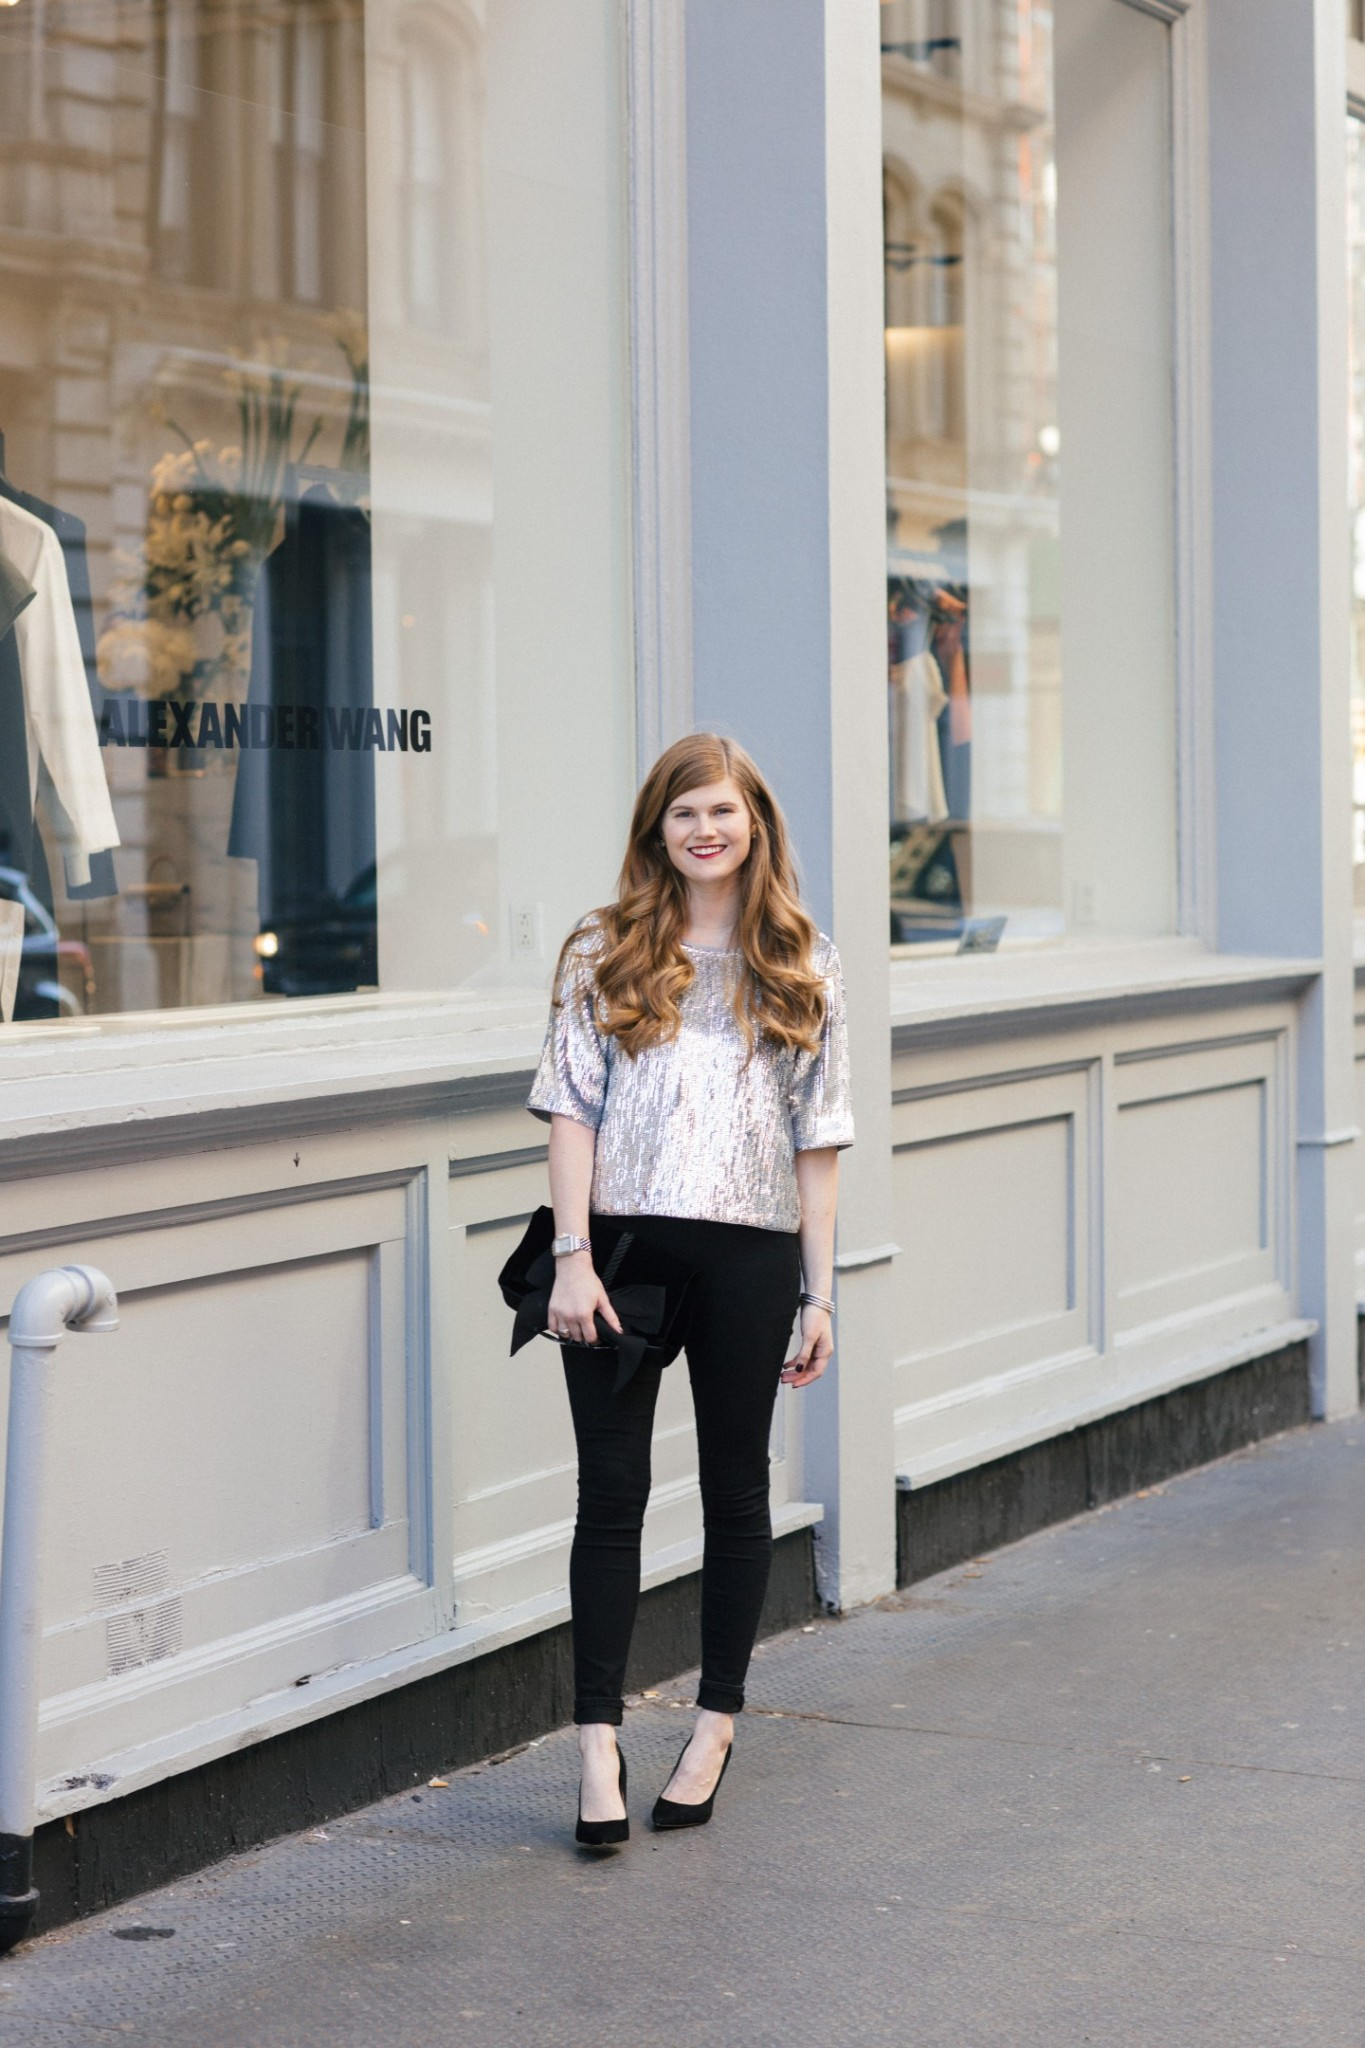 Lifestyle blogger Mollie Sheperdson shares her 2017 NYE look